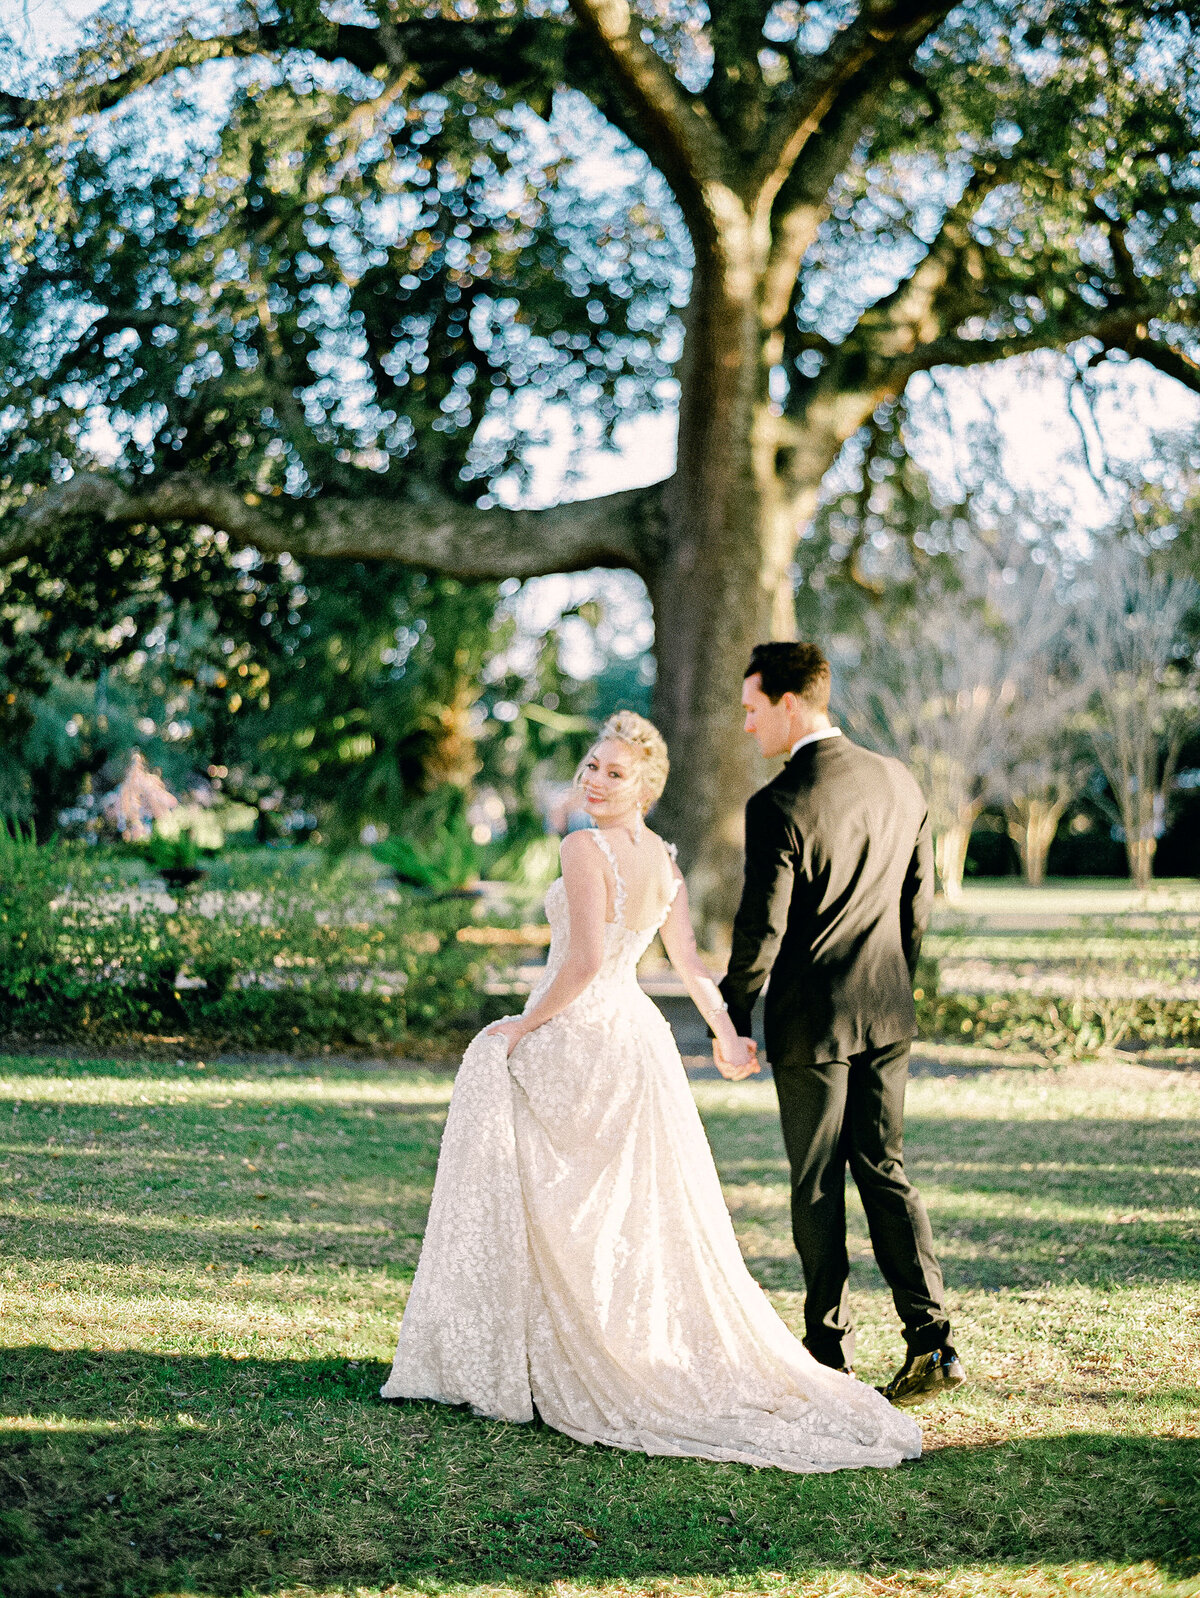 bride in white wedding dress walking with groom in black tuxedo in green garden Charleston